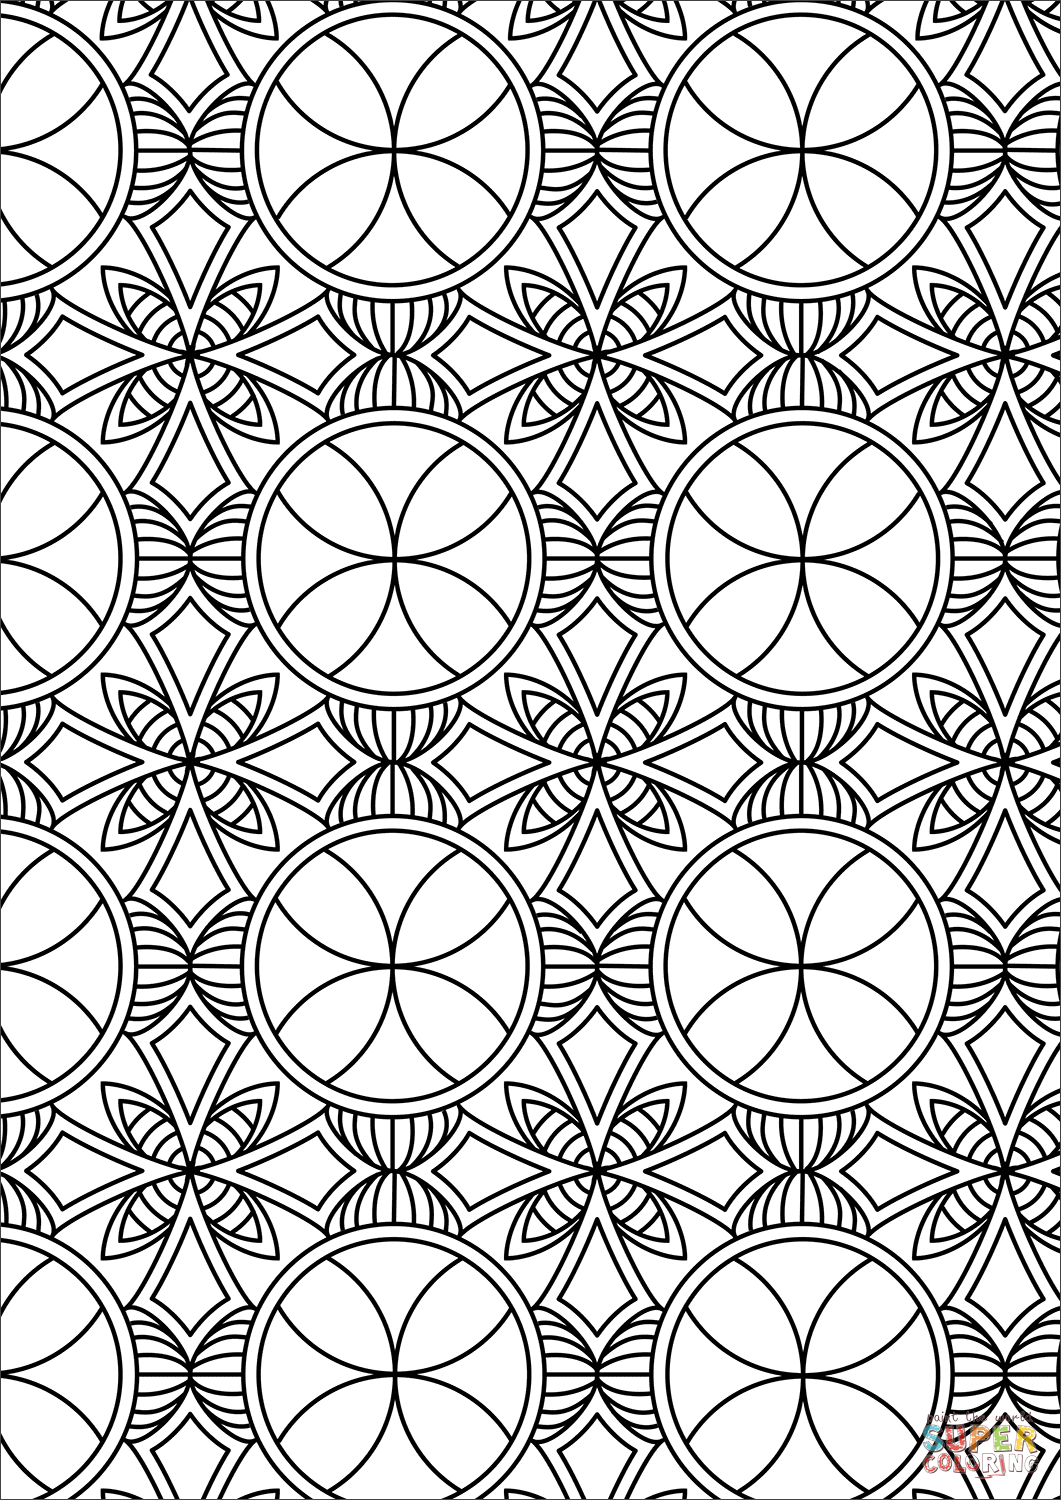 patterns to colour and print abstract pattern coloring page free printable coloring pages patterns print colour to and